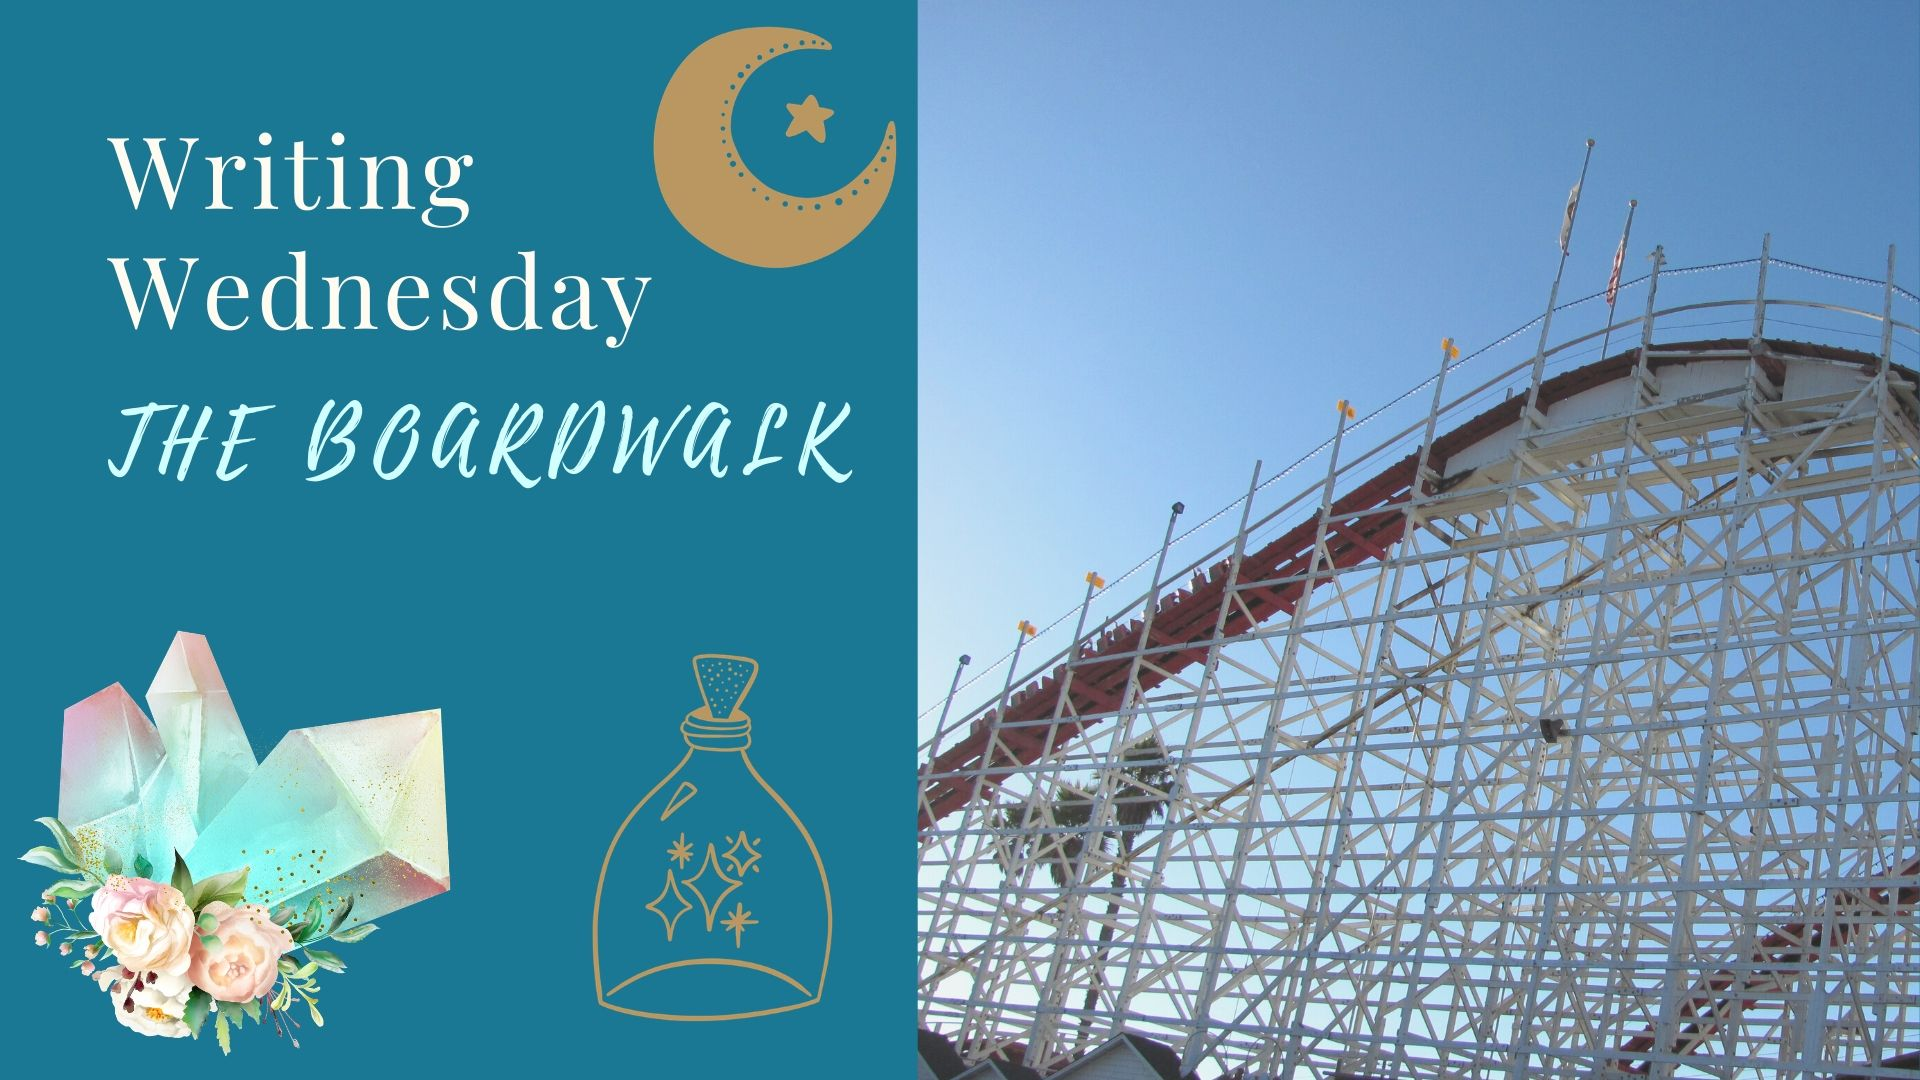 Writing Wednesday: The Boardwalk